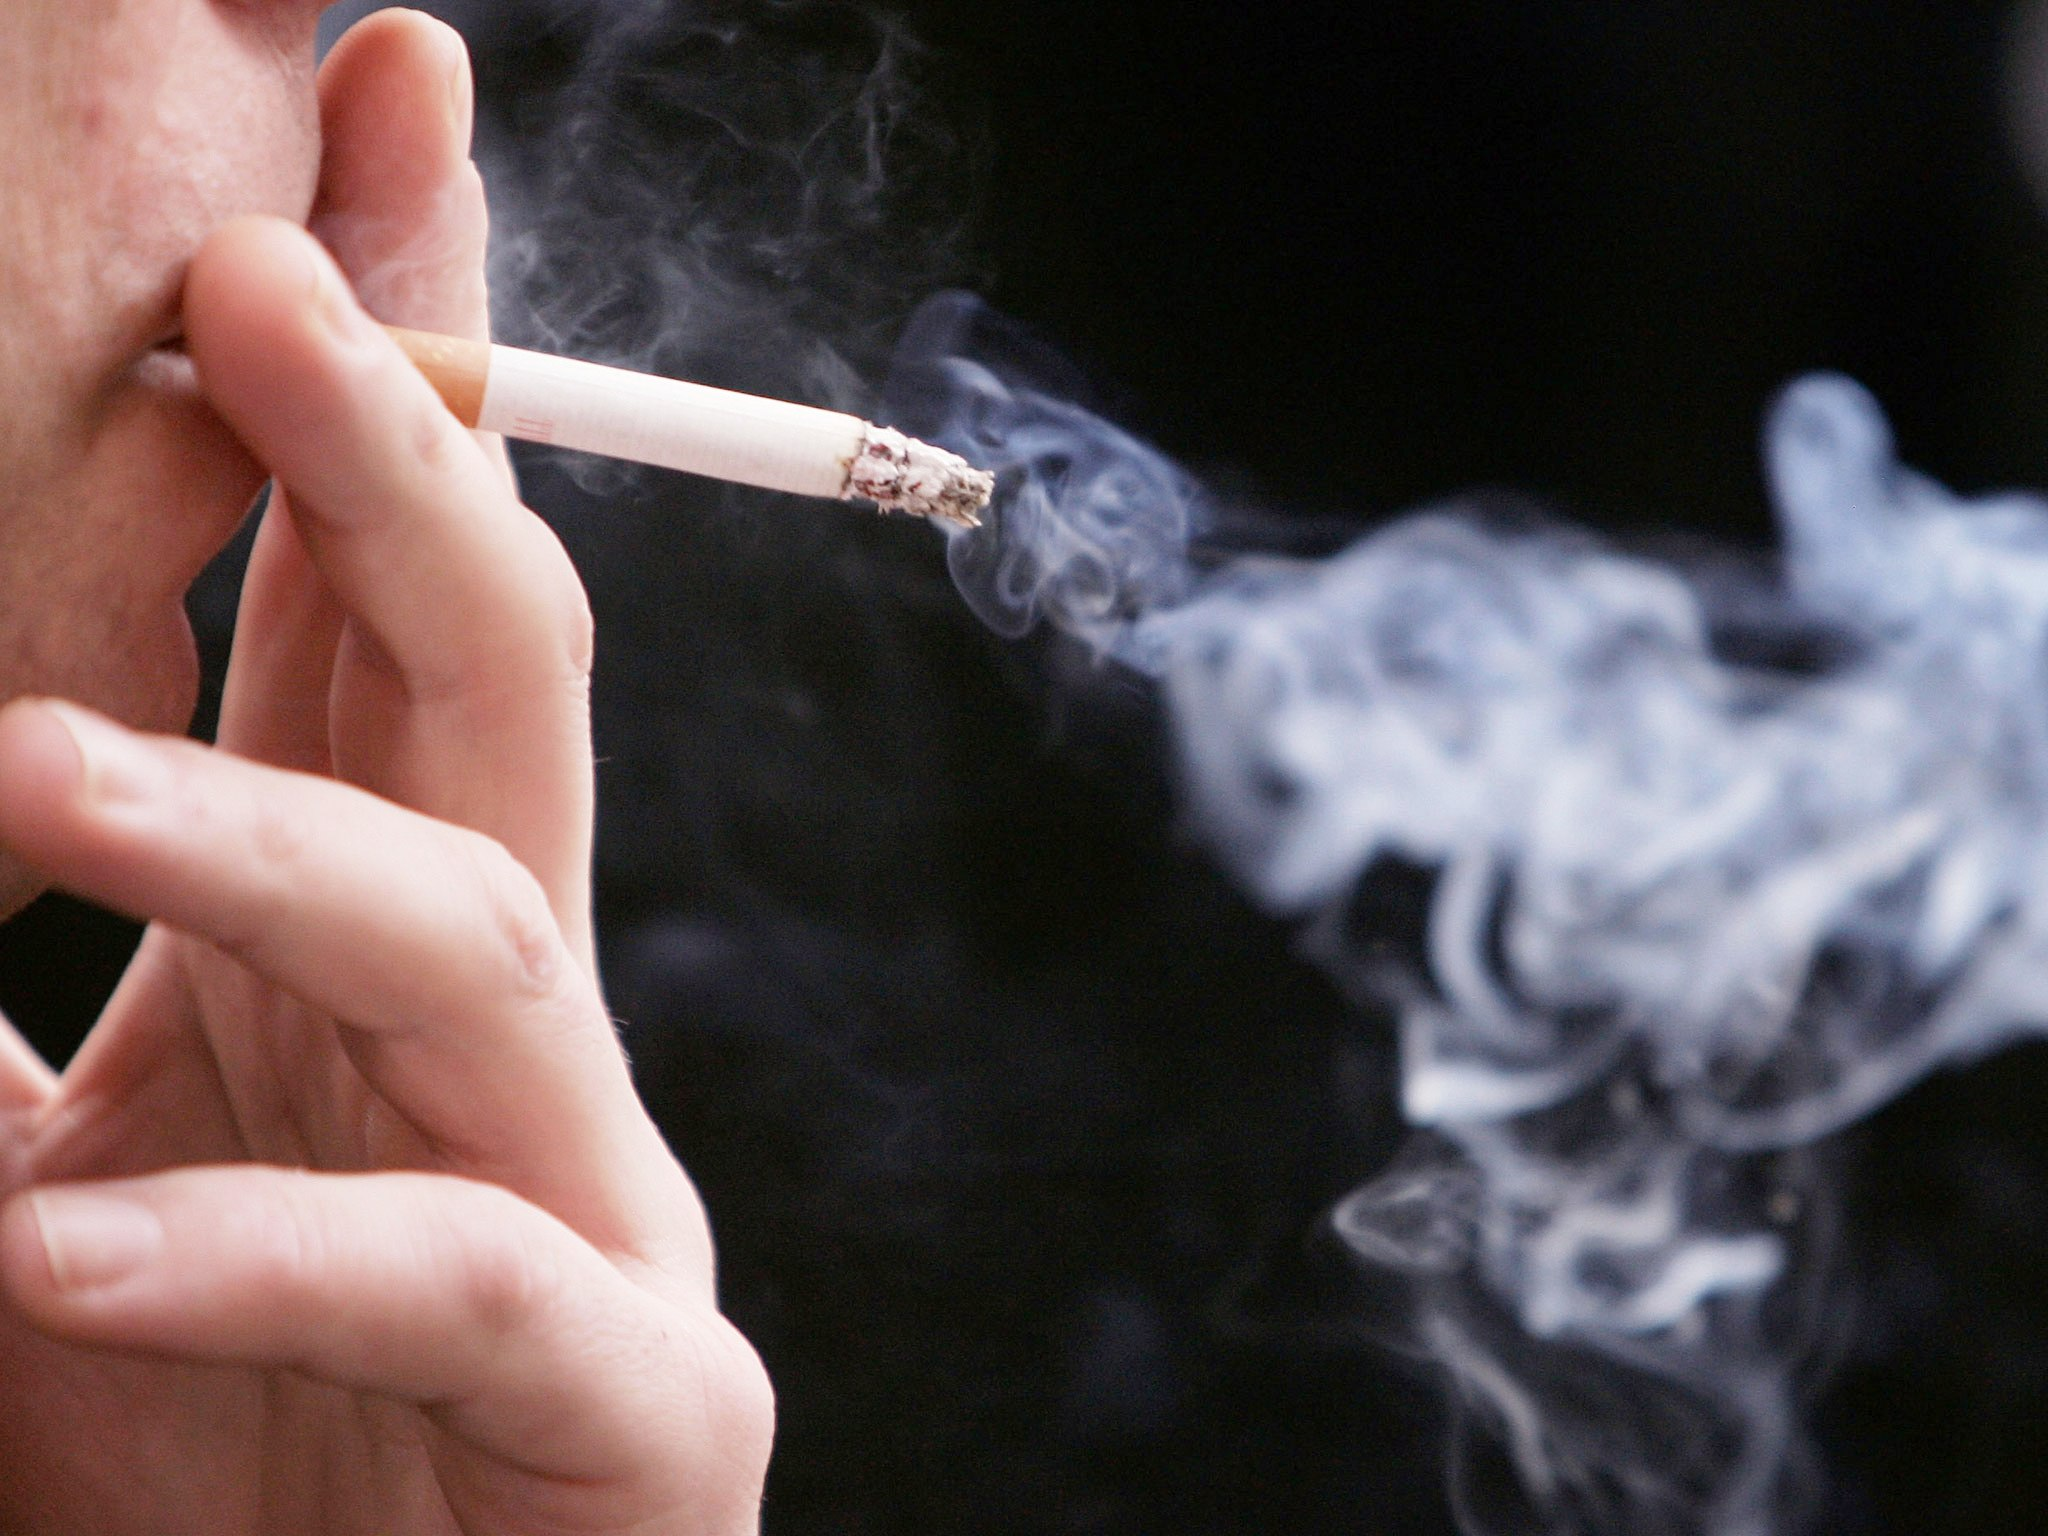 Study says more than two thirds of smokers are killed by diseases caused by tobacco use